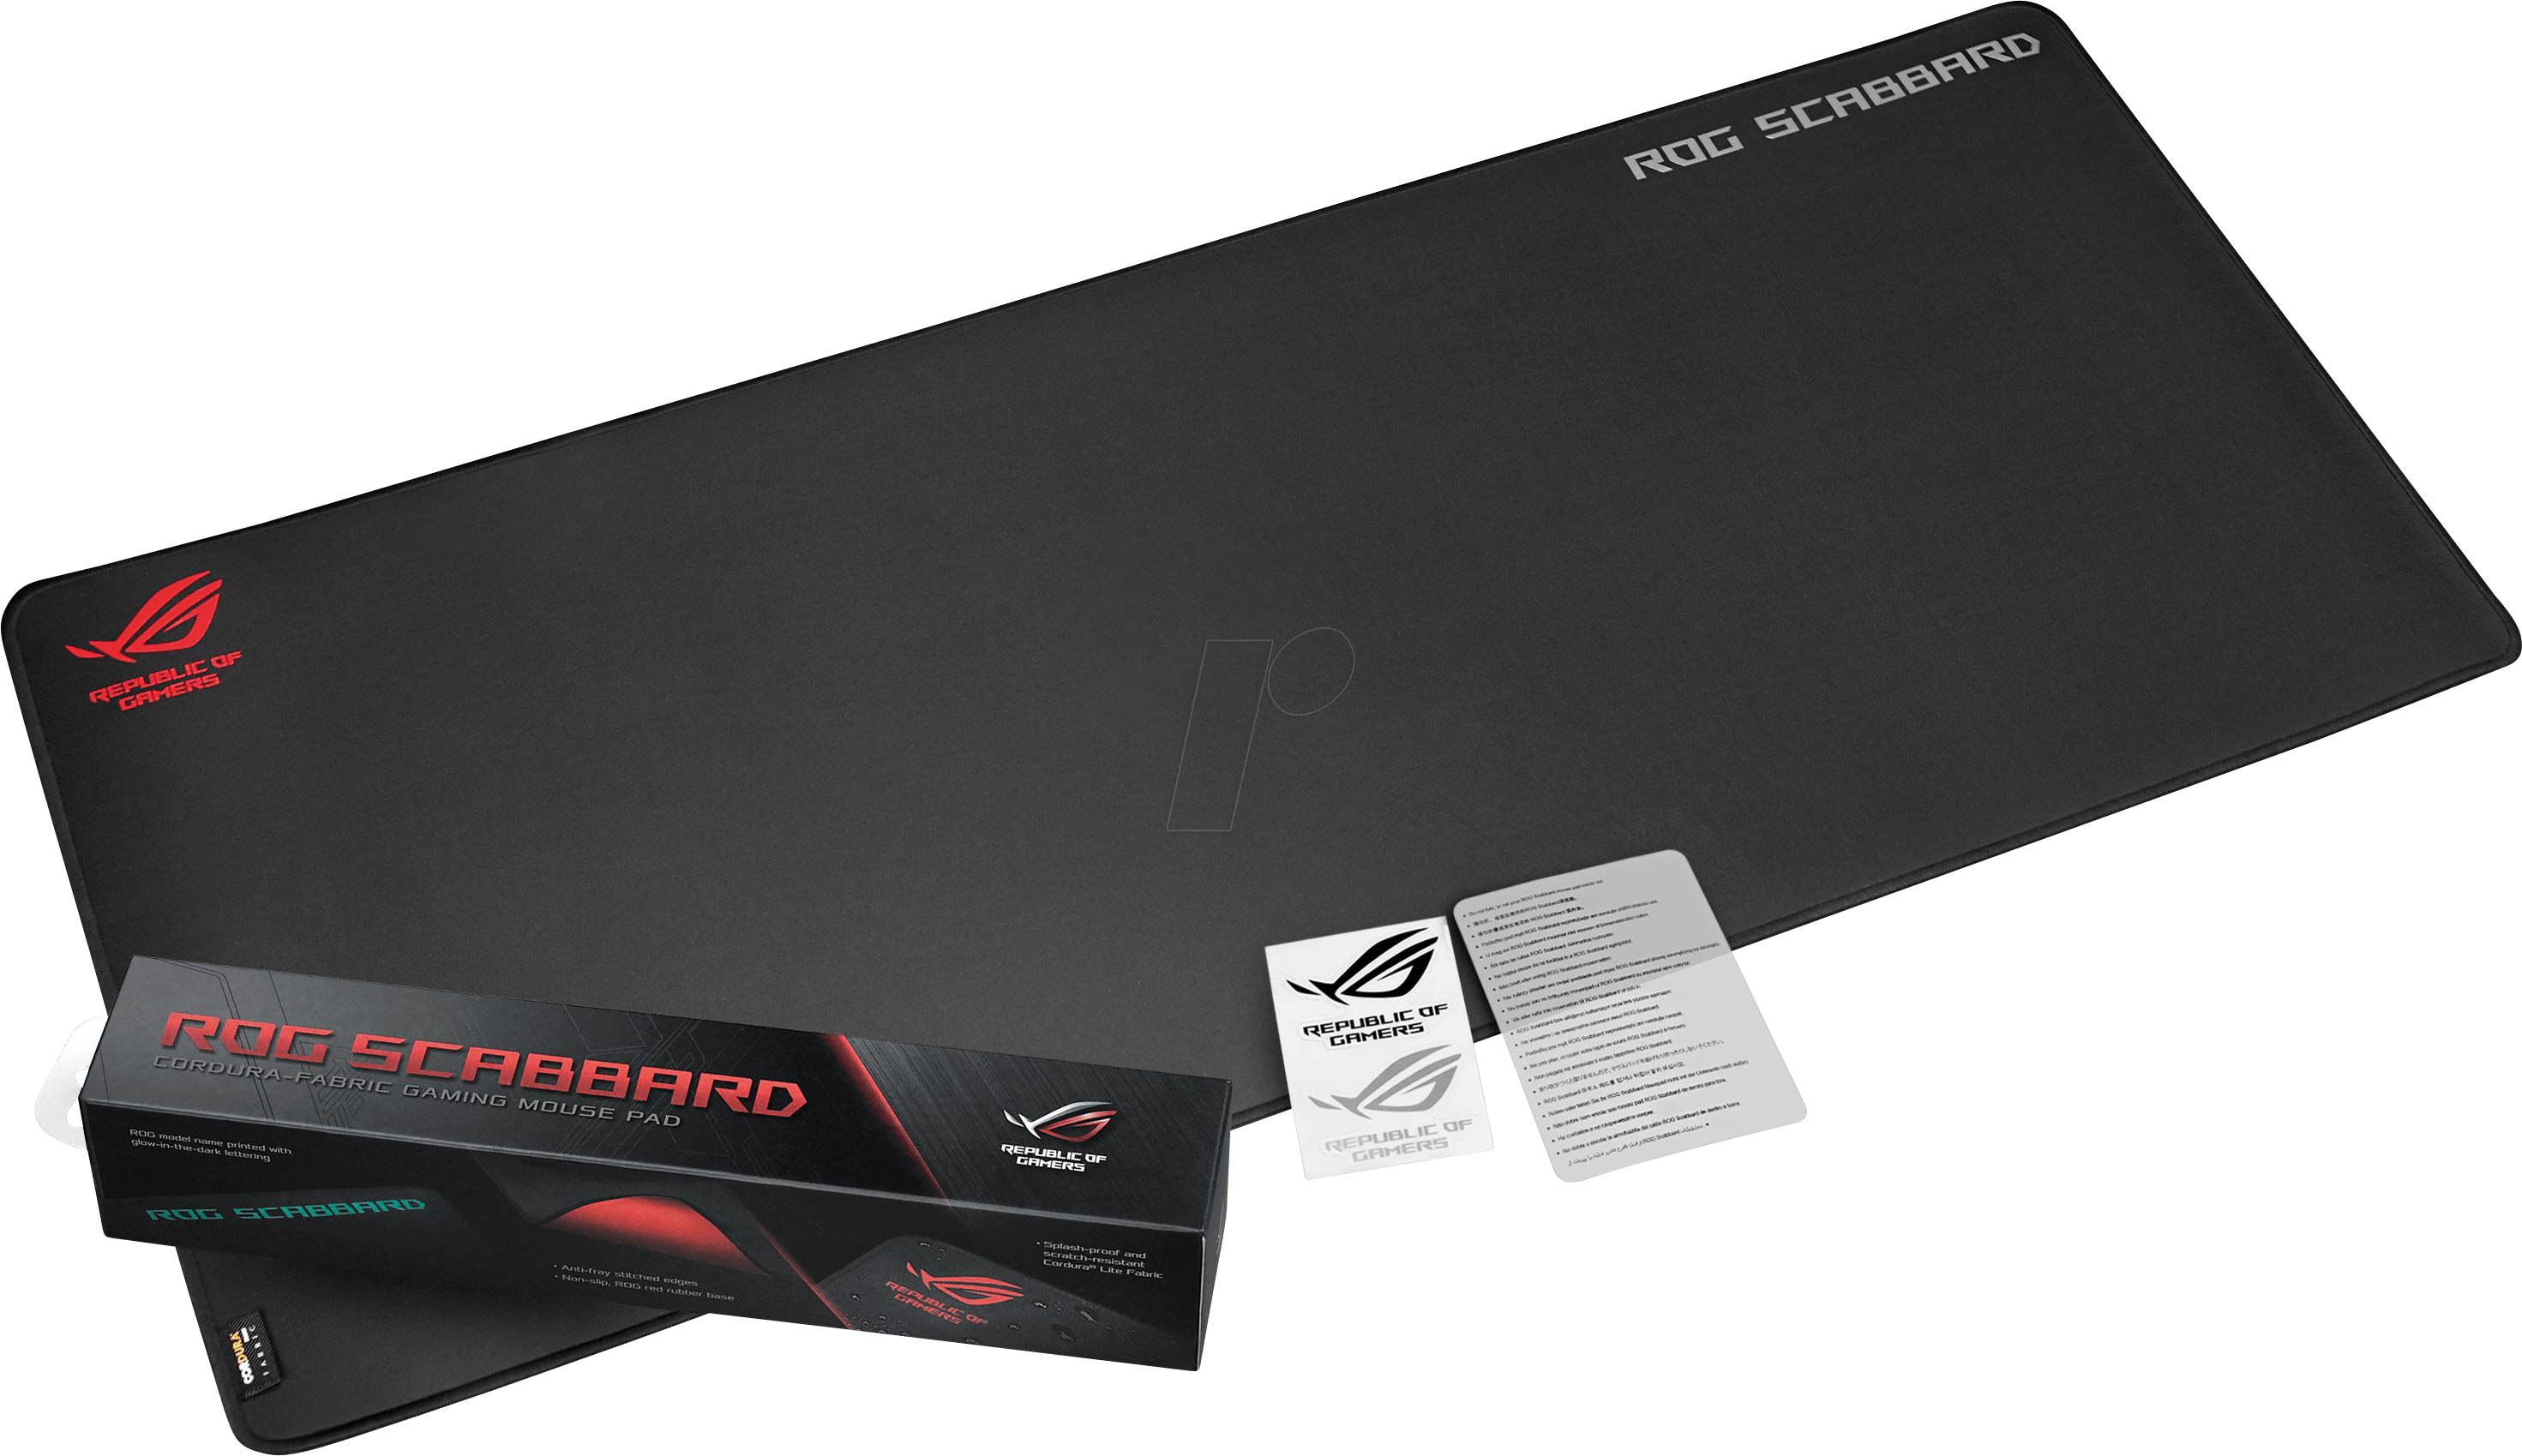 ASUS 90MP00S0: Gaming mouse pad, Scabbard at reichelt elektronik